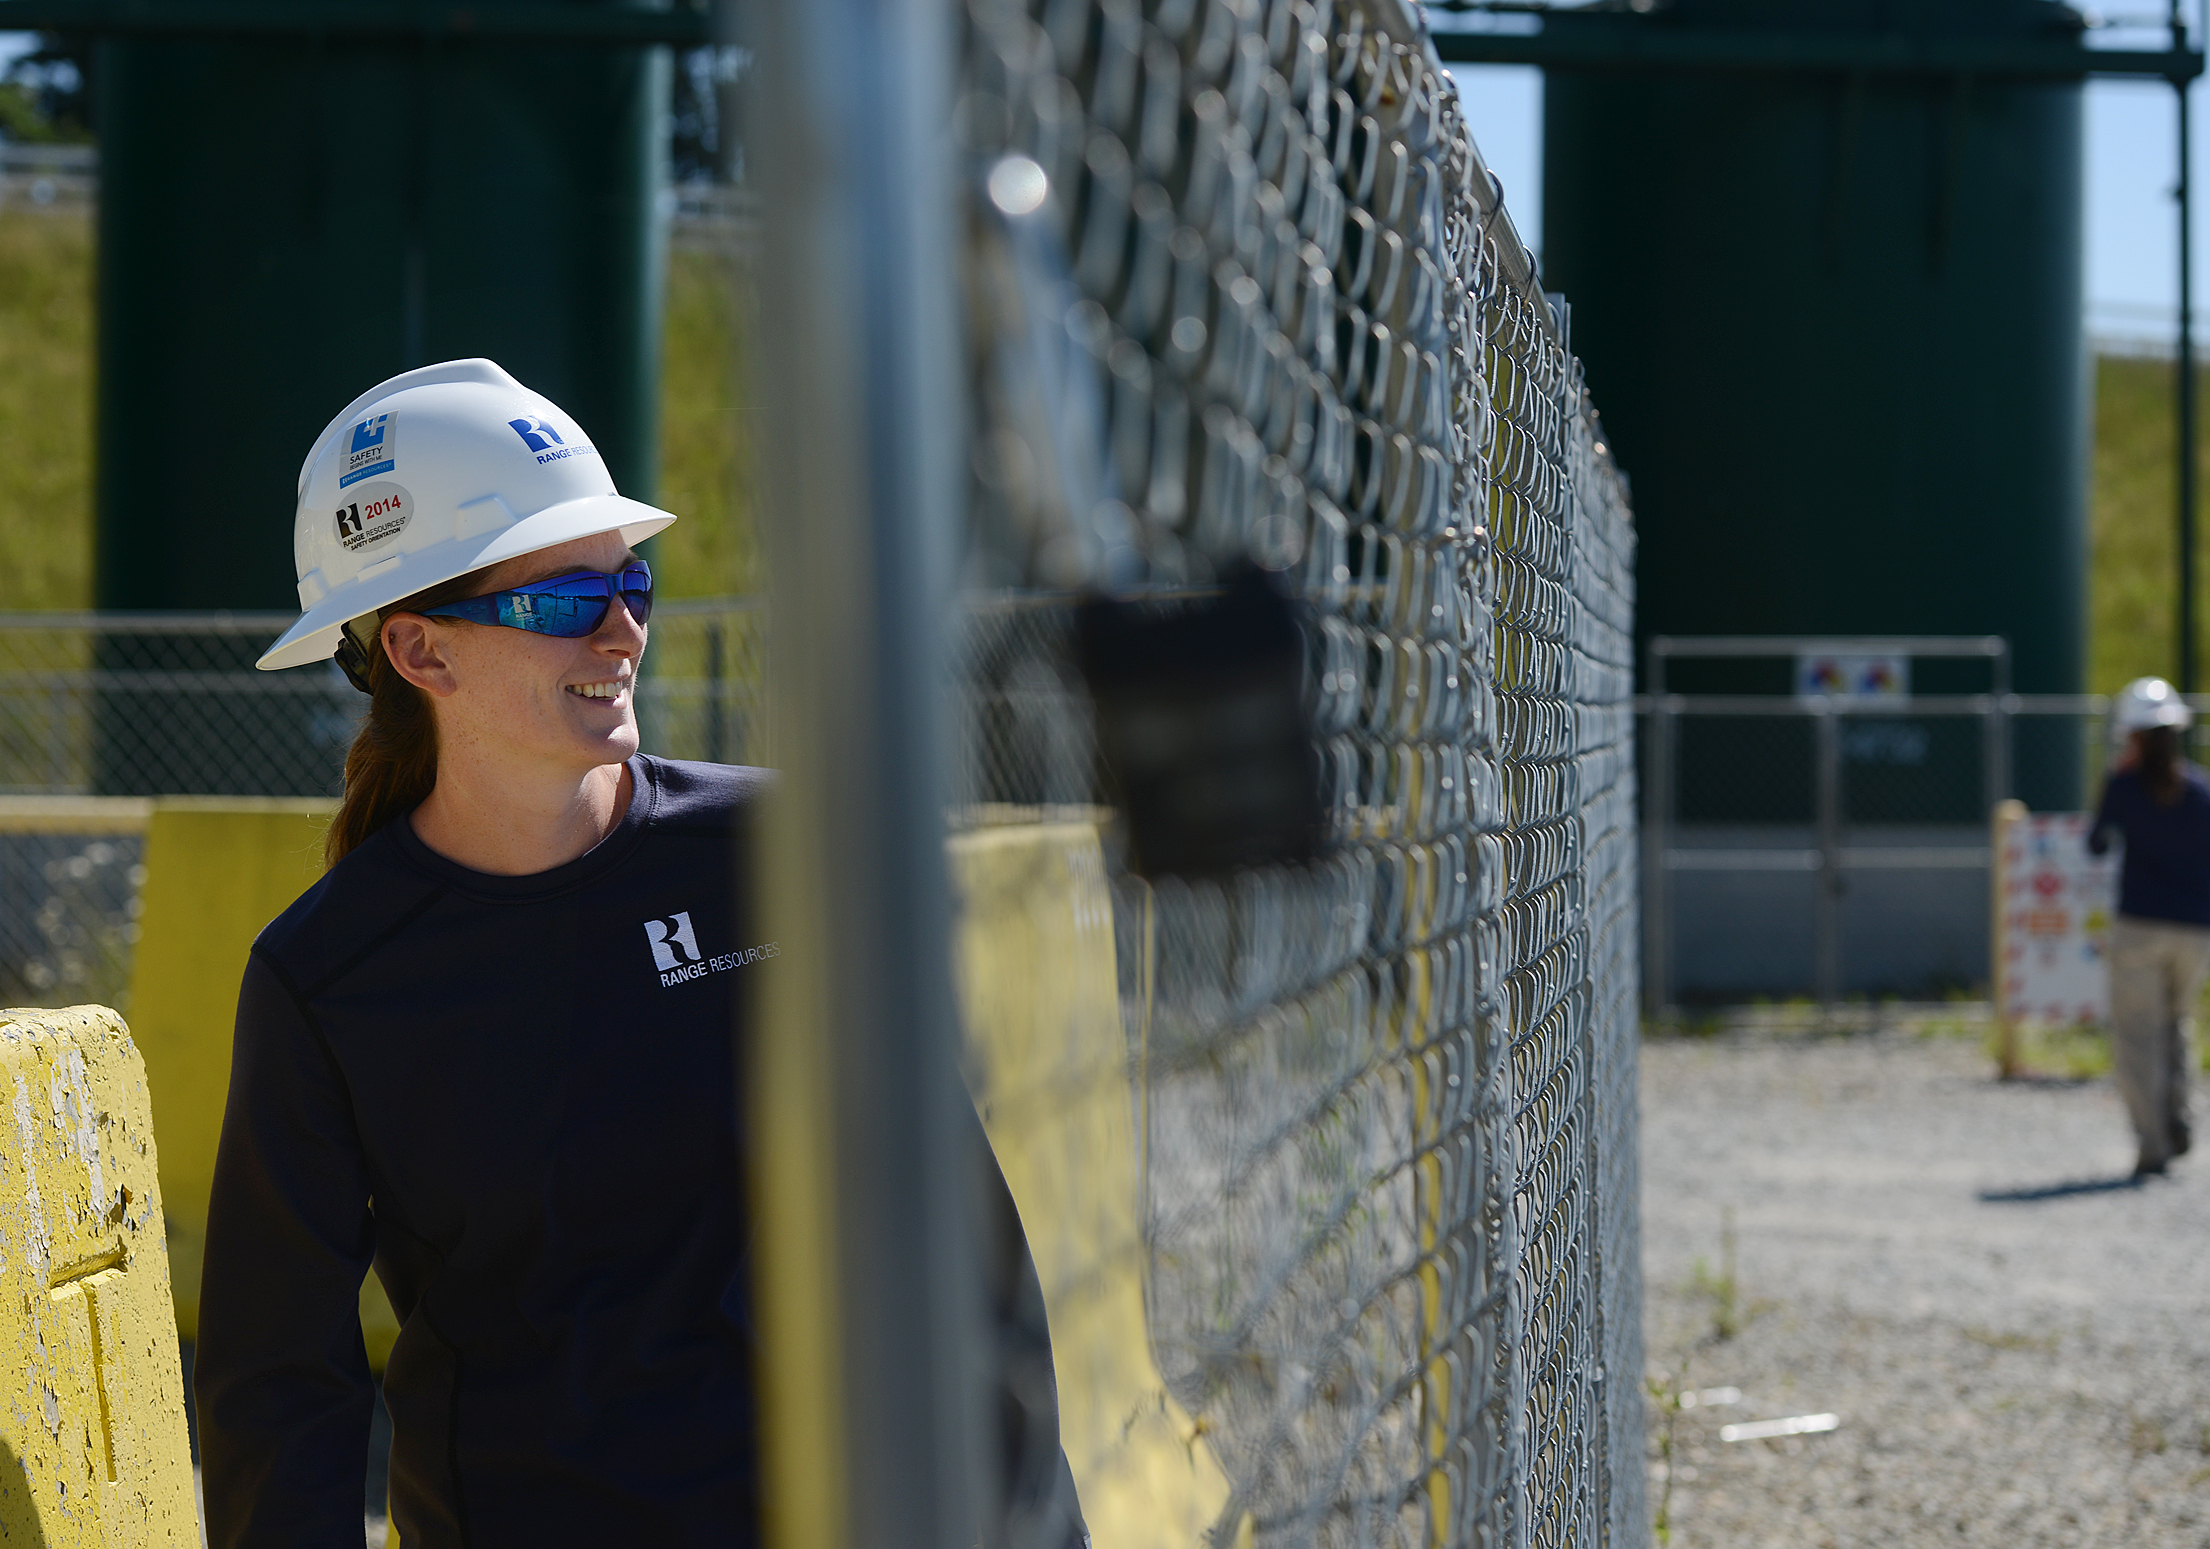 20140725jrWomenBiz3-2 Hanna McAvoy, 28, of Burgettstown, an environmental technician with Range Resources, checks the Hoskins well pad on Old Hickory Ridge Road in July.